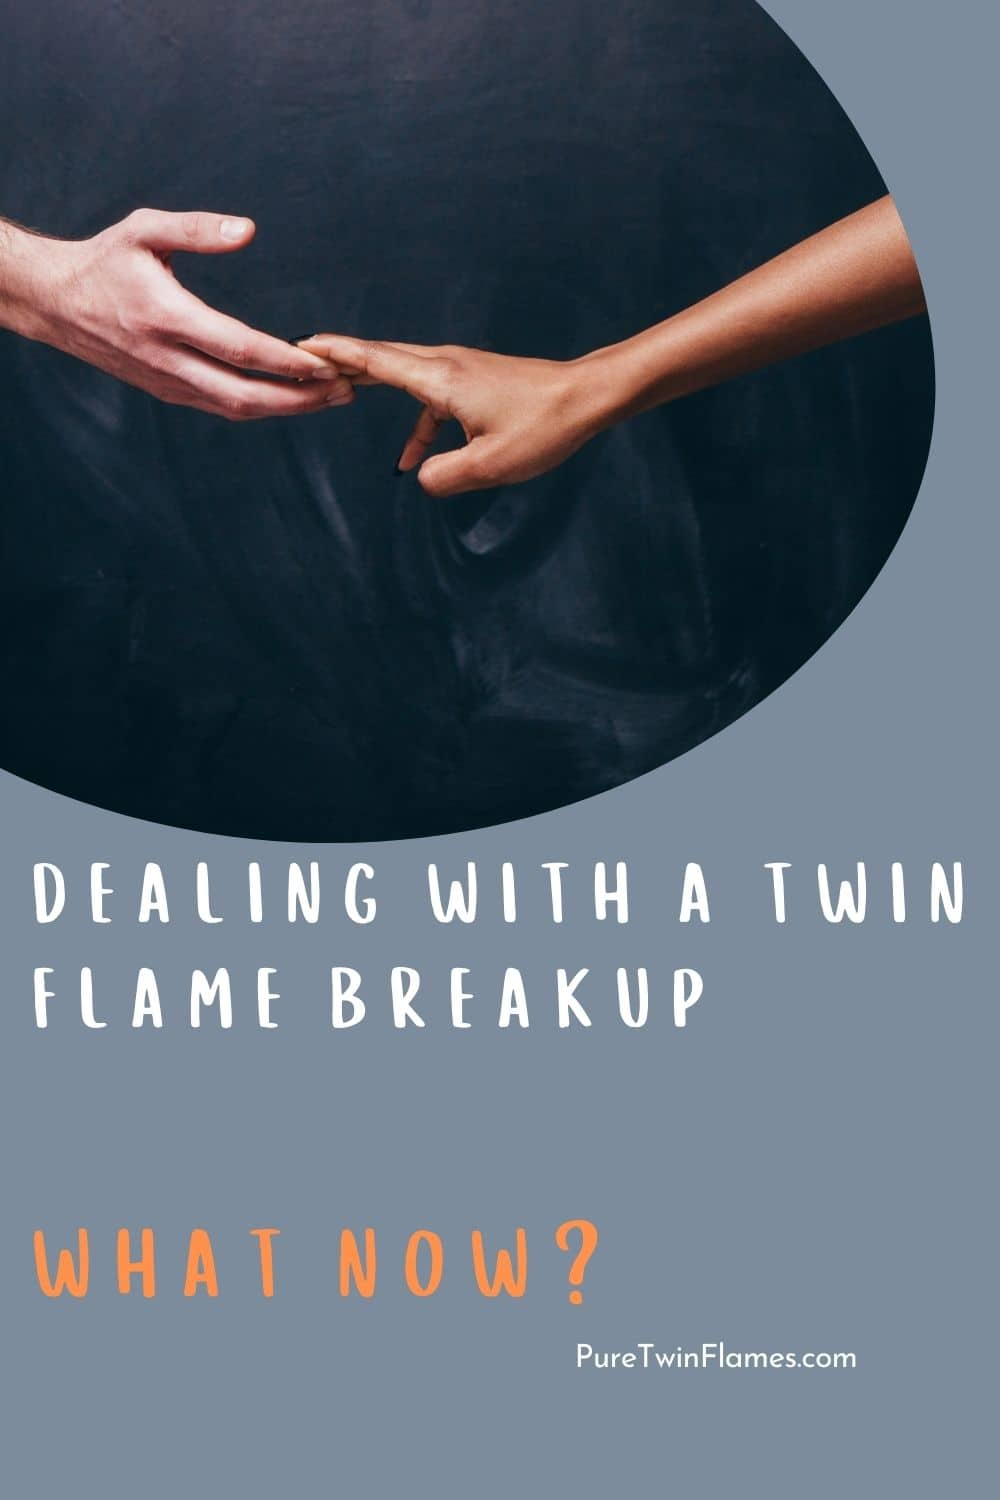 When Twin Flames Break Up: Is It The End? - Pure Twin Flames